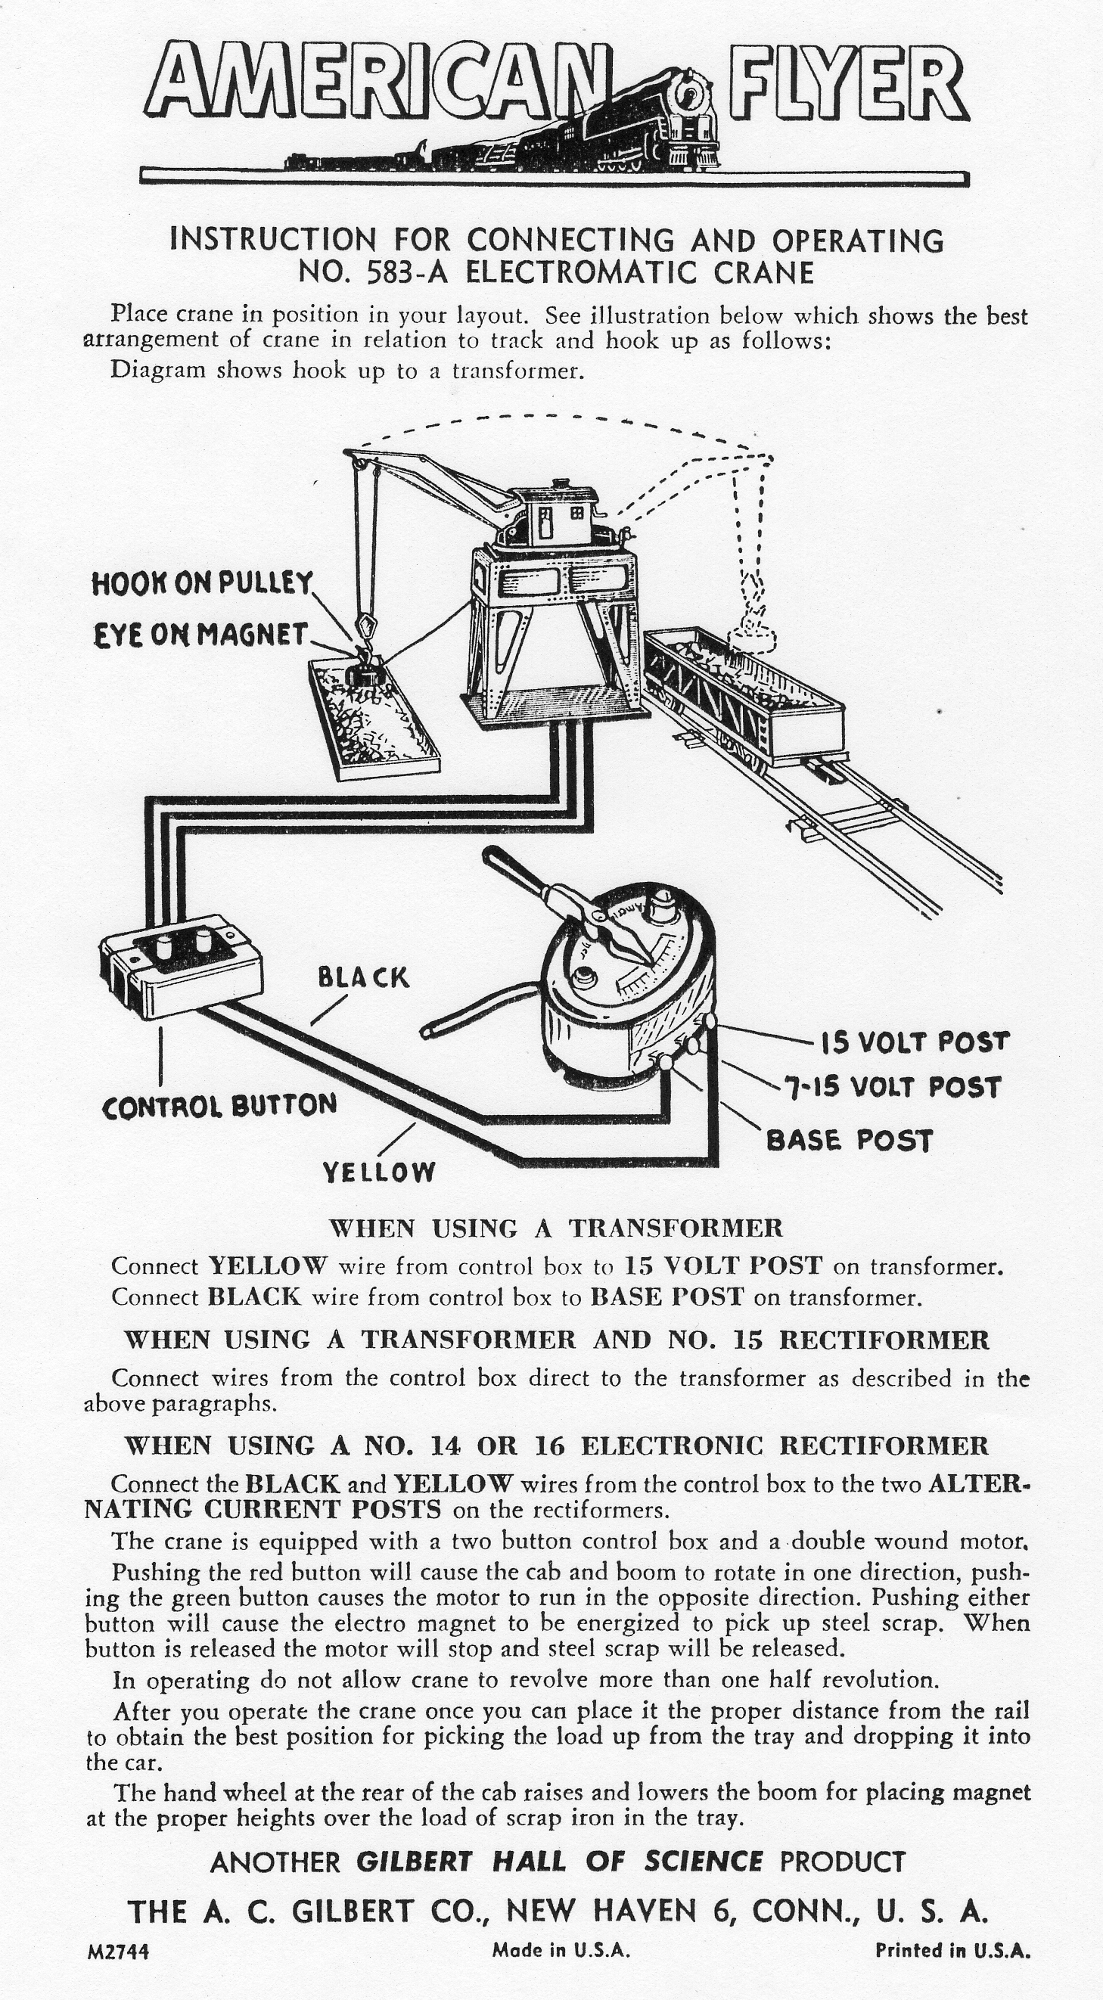 Instructions for Connecting and Operating No. 583A Electromatic Crane